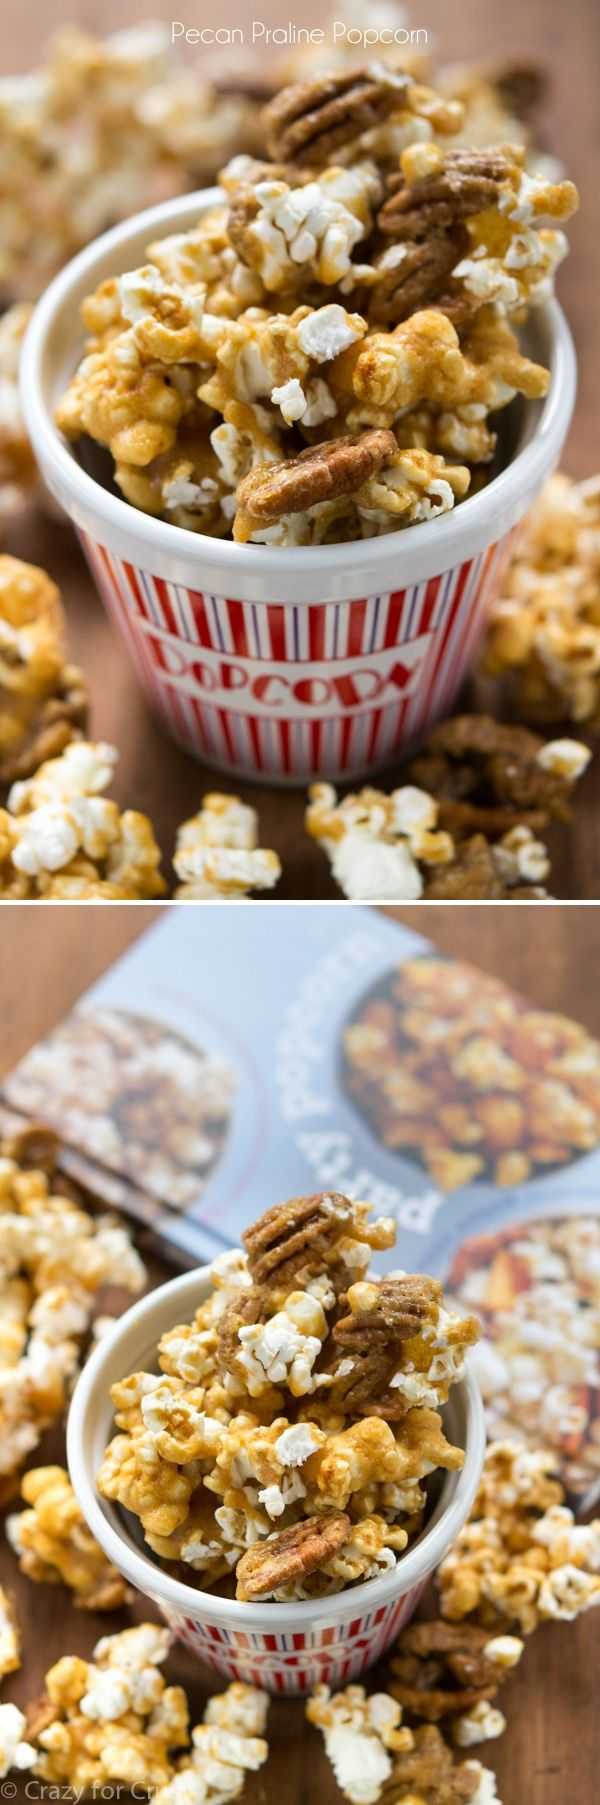 Pecan Praline Popcorn - the best mix of pecan praline and popcorn! It's an easy recipe and so addictive! #movienight